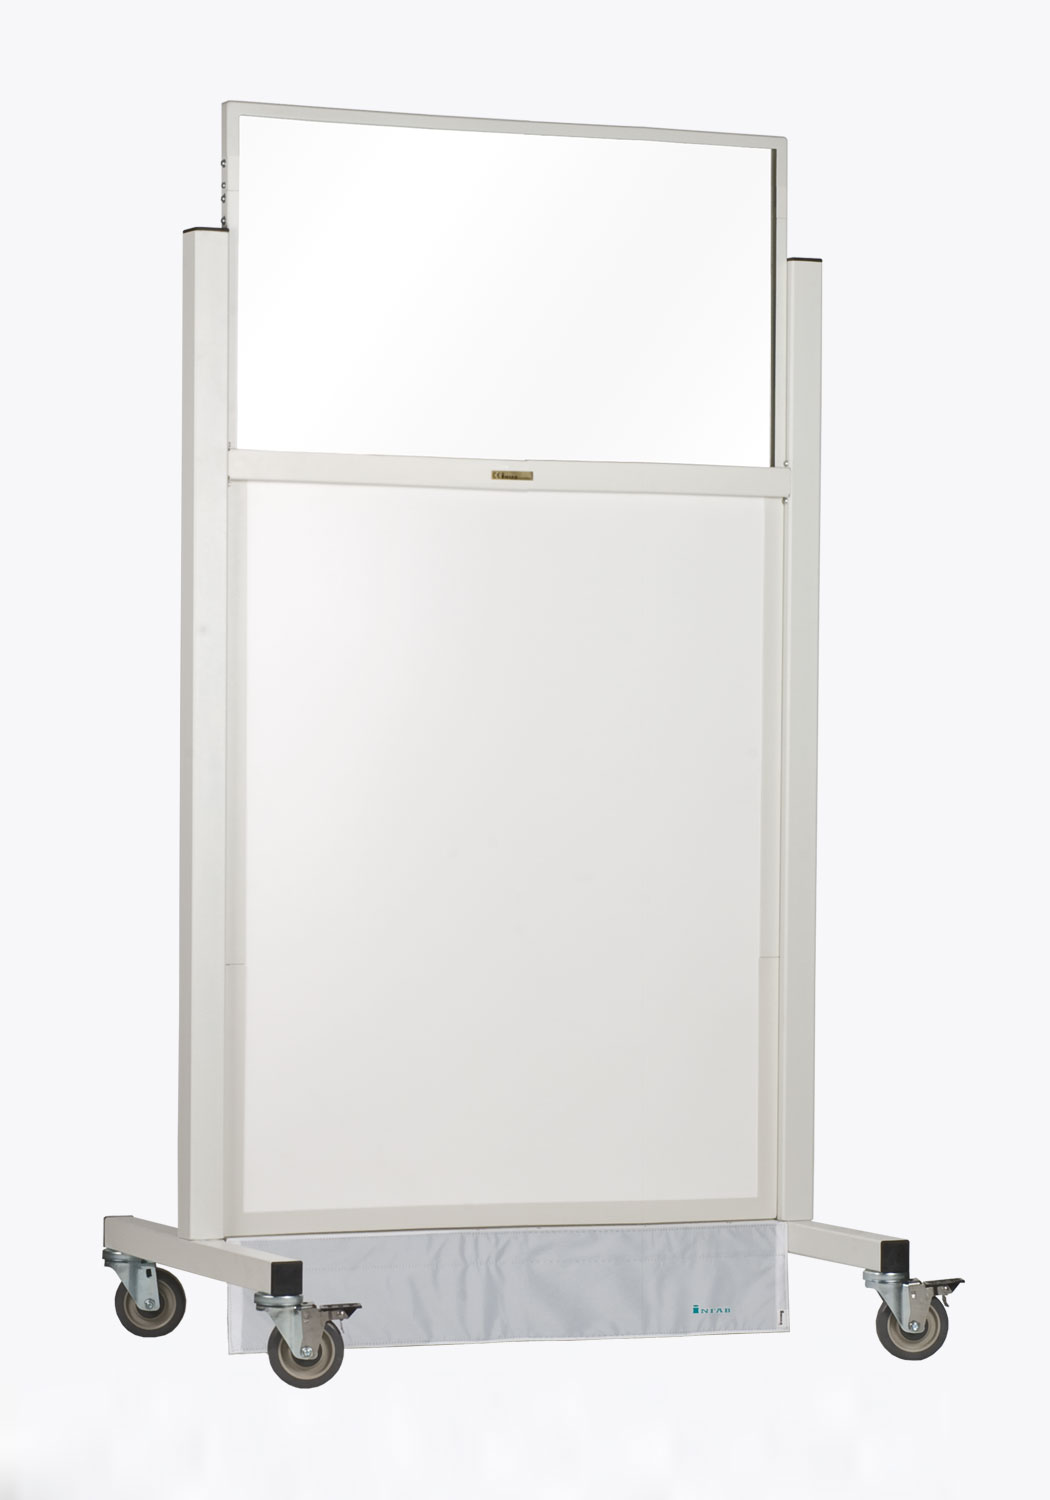 Regular X-ray Mobile Barrier